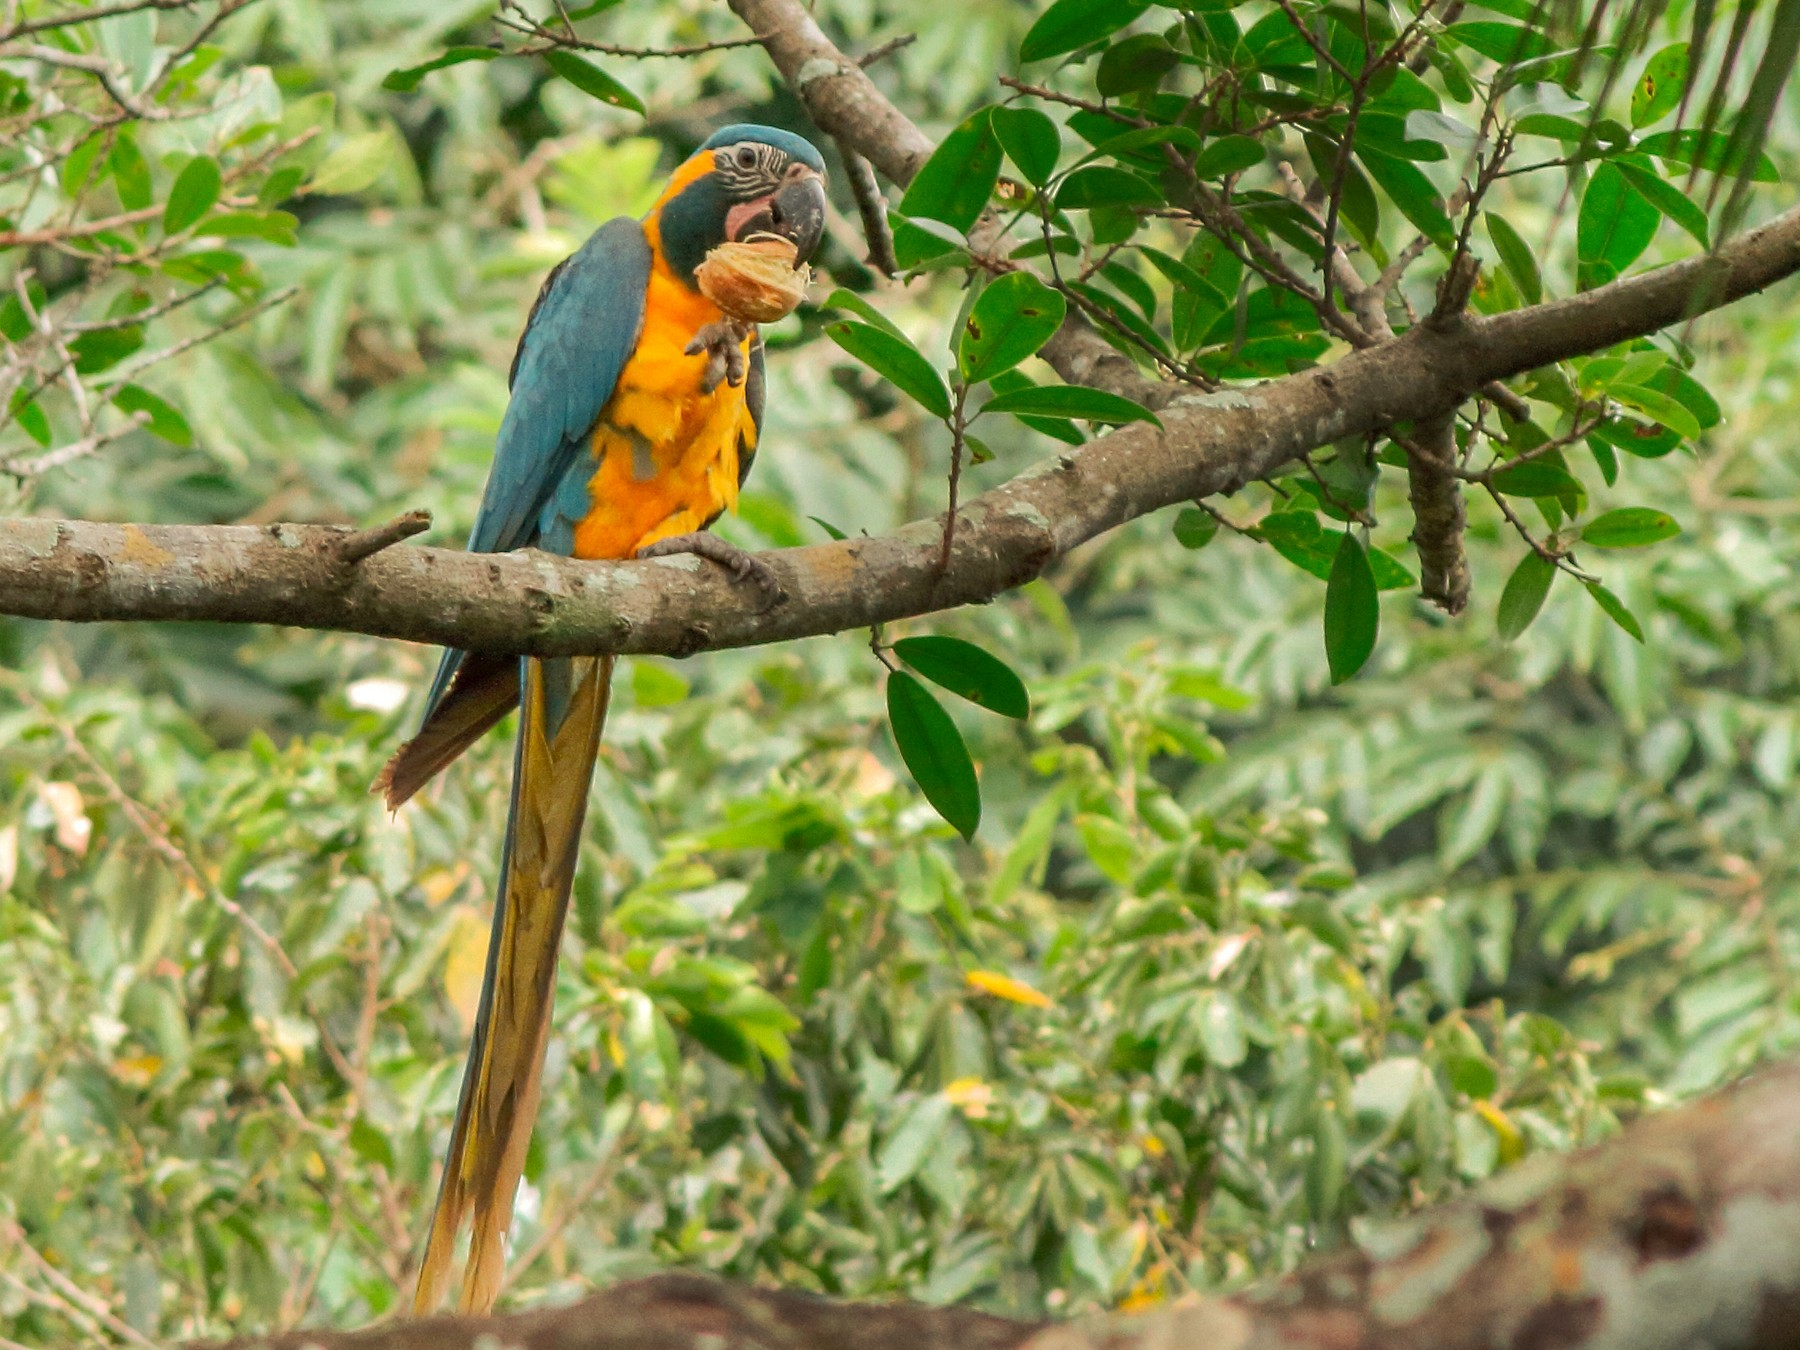 Blue-throated Macaw - Manfred Bienert